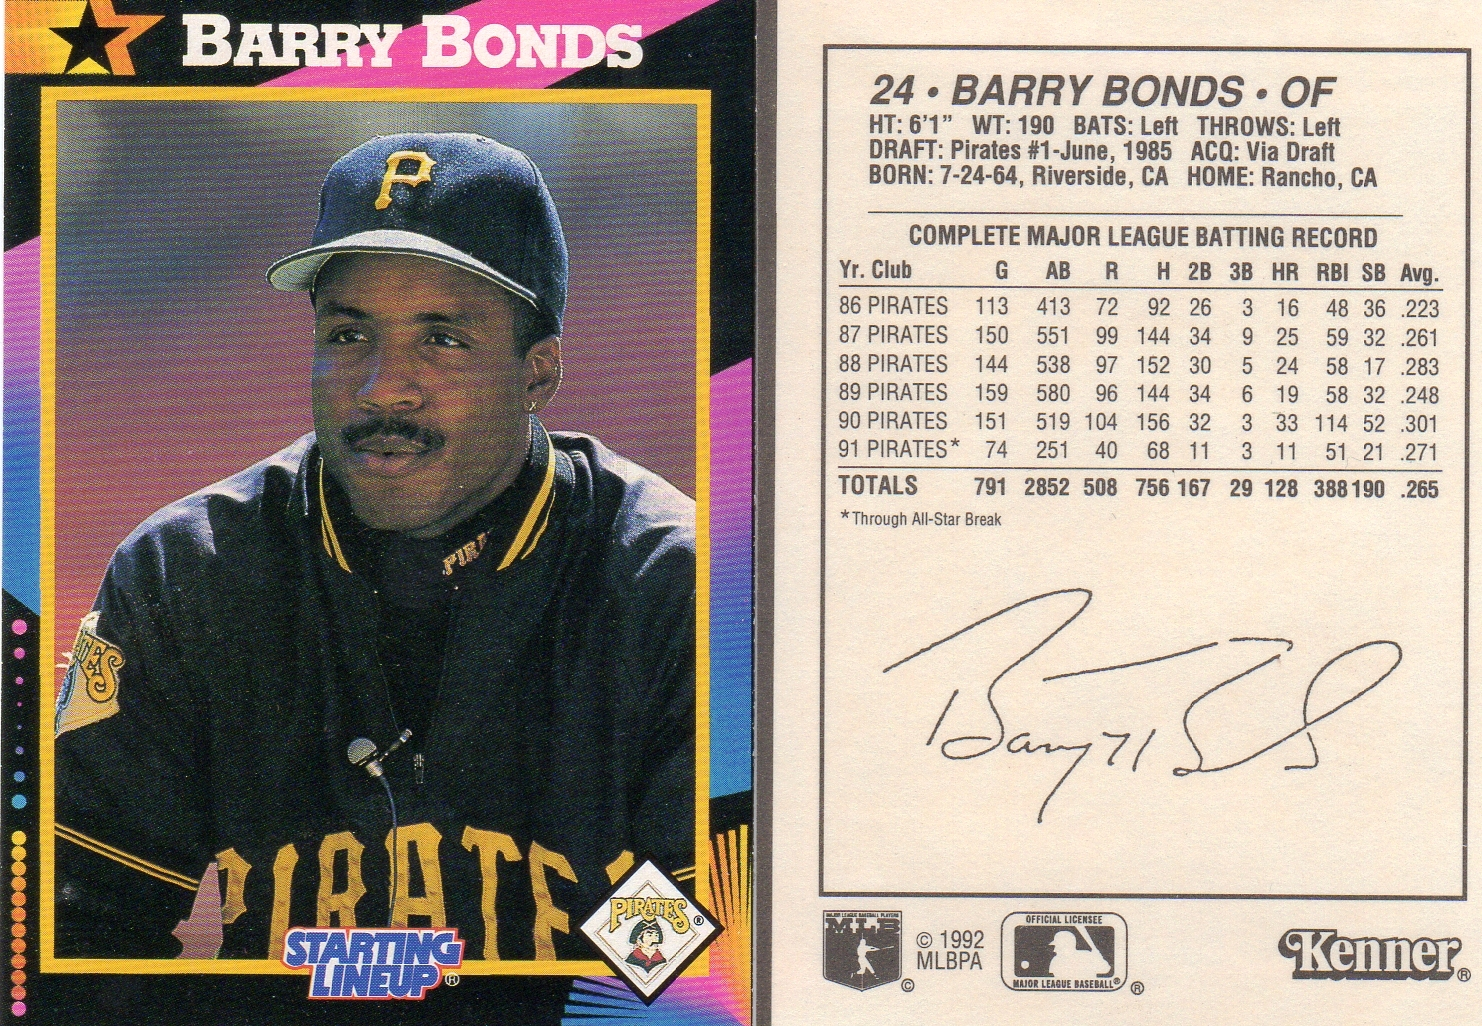 Barry Bonds Checklist - Supercollector Catalog